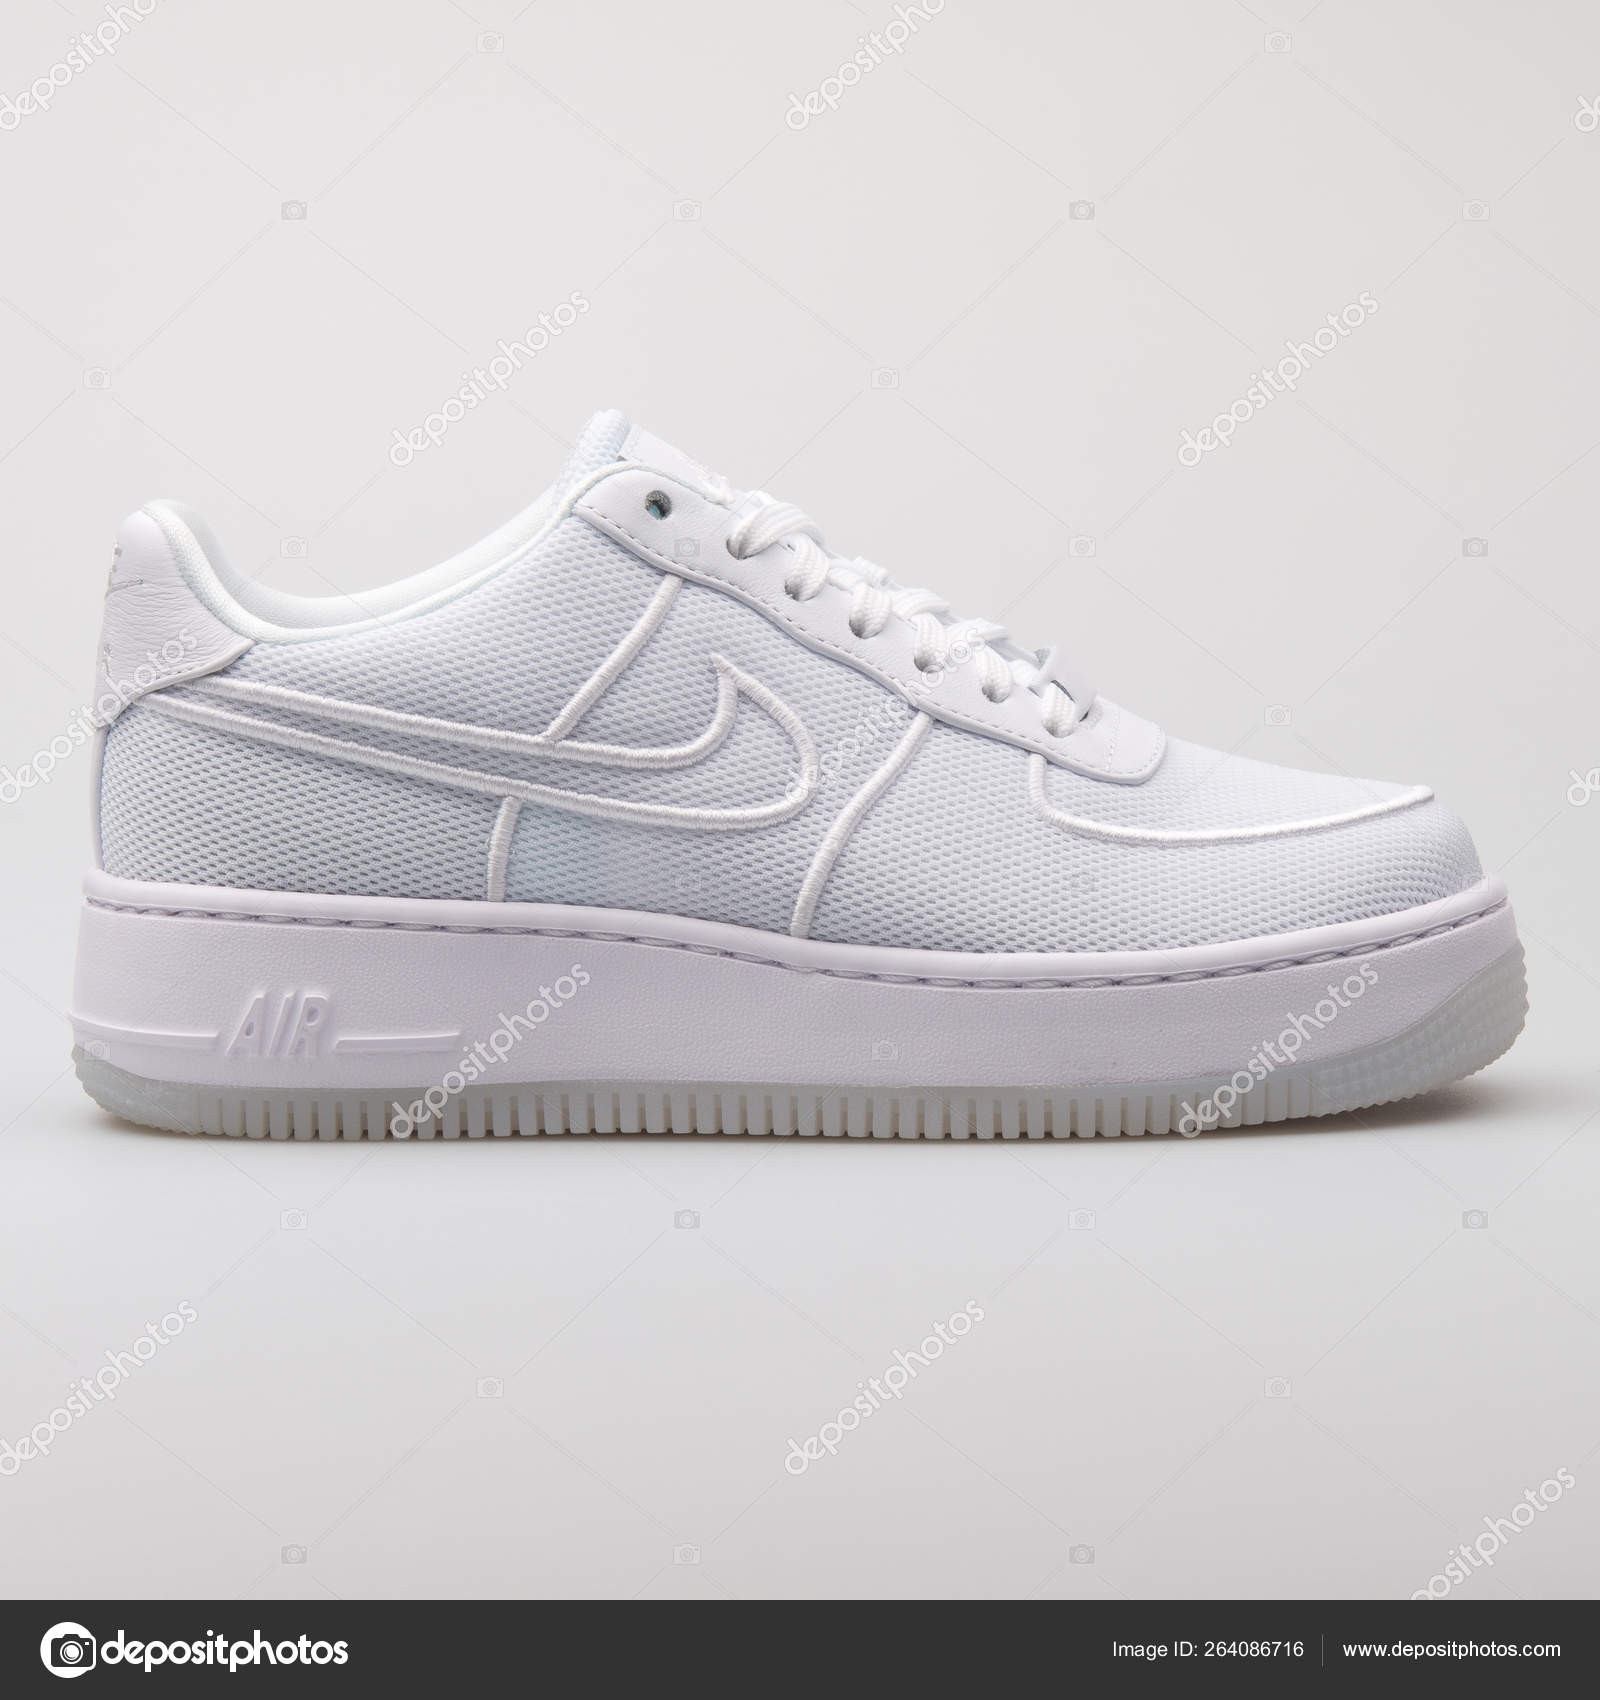 Red Desde allí recurso renovable  Nike Air Force 1 Low Upstep BR white sneaker – Stock Editorial Photo ©  xMarshallfilms #264086716